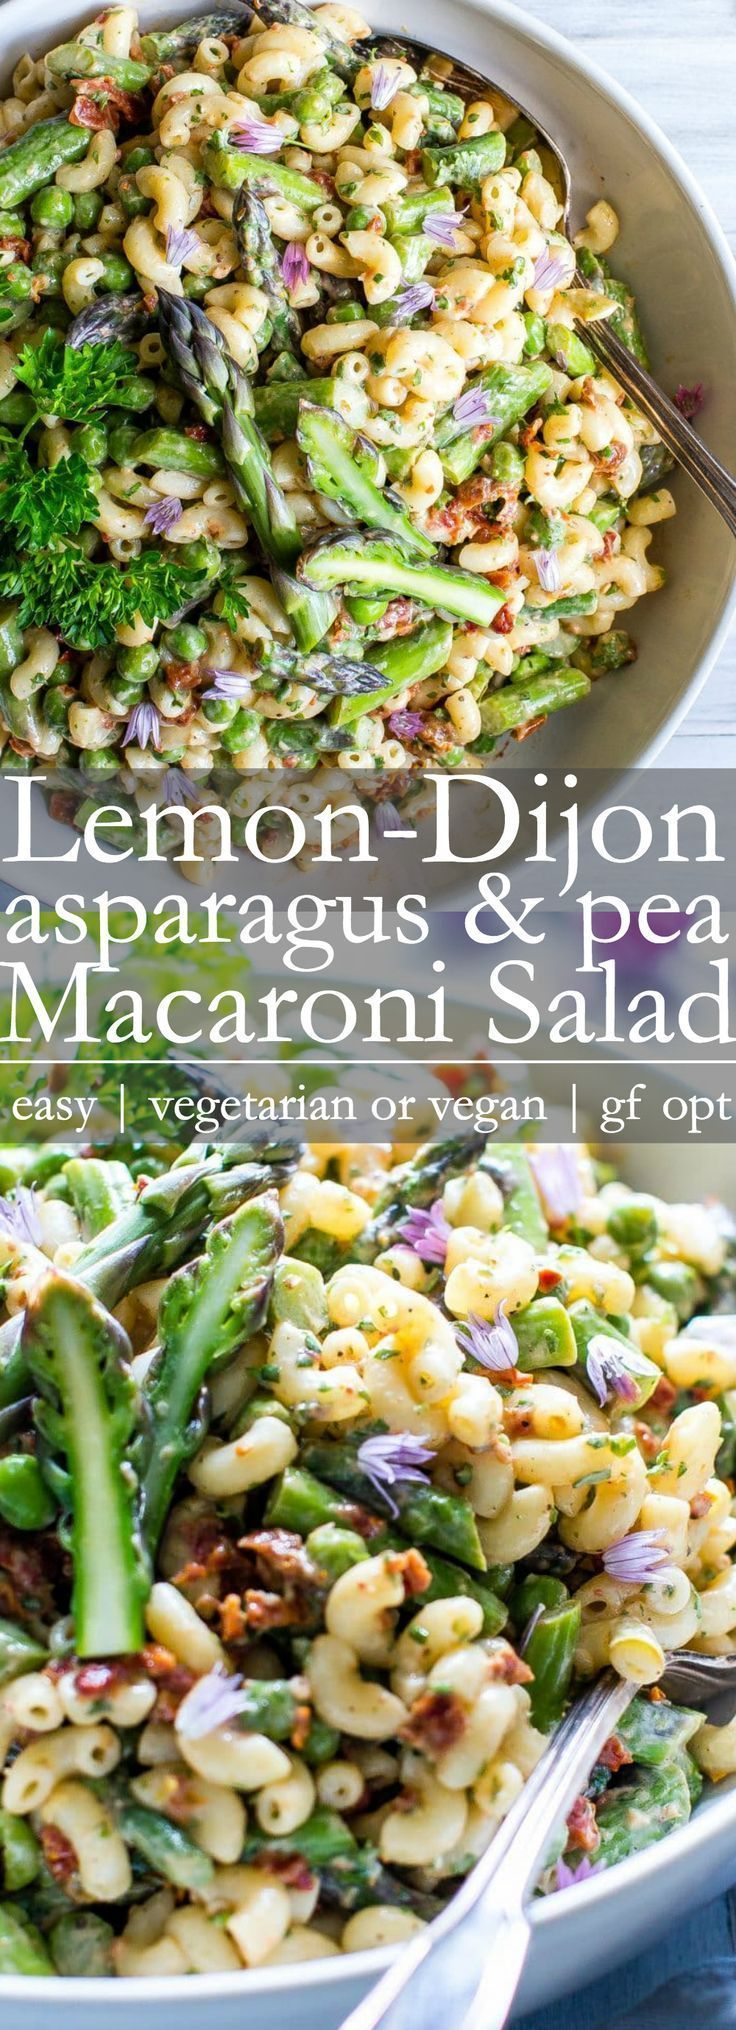 Texture, flavor, creamy and make-ahead easy, Lemon-Dijon Asparagus and Pea Macaroni Salad is packed with spring veggies and is a welcomed creamy macaroni salad to picnics and potlucks. or +